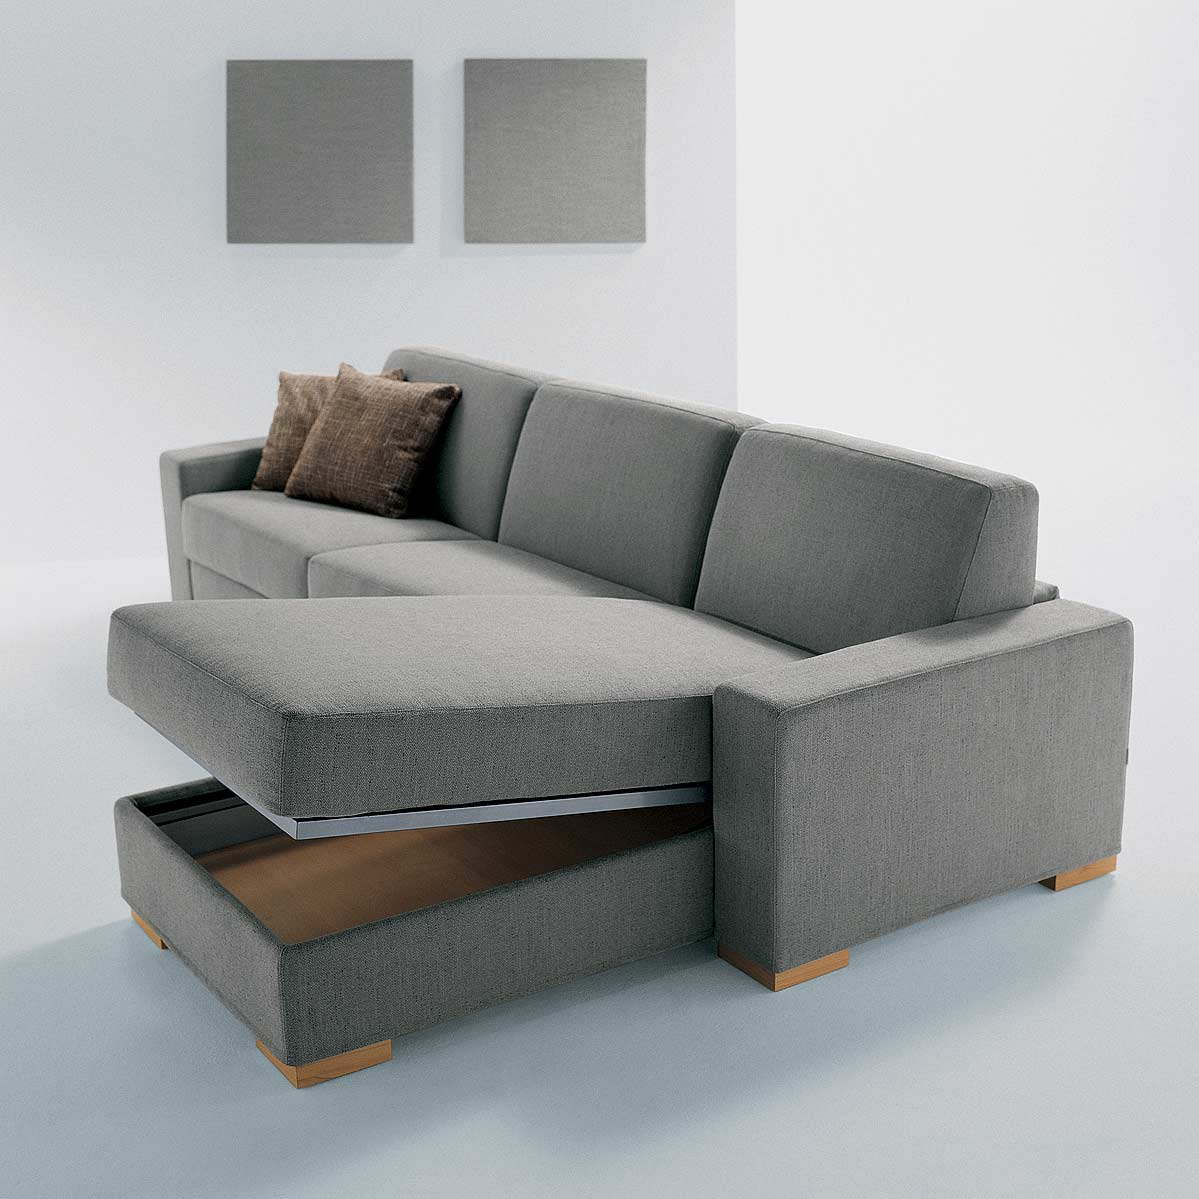 Click clack sofa bed sofa chair bed modern leather sofa bed ikea convertible sofa bed Storage loveseat